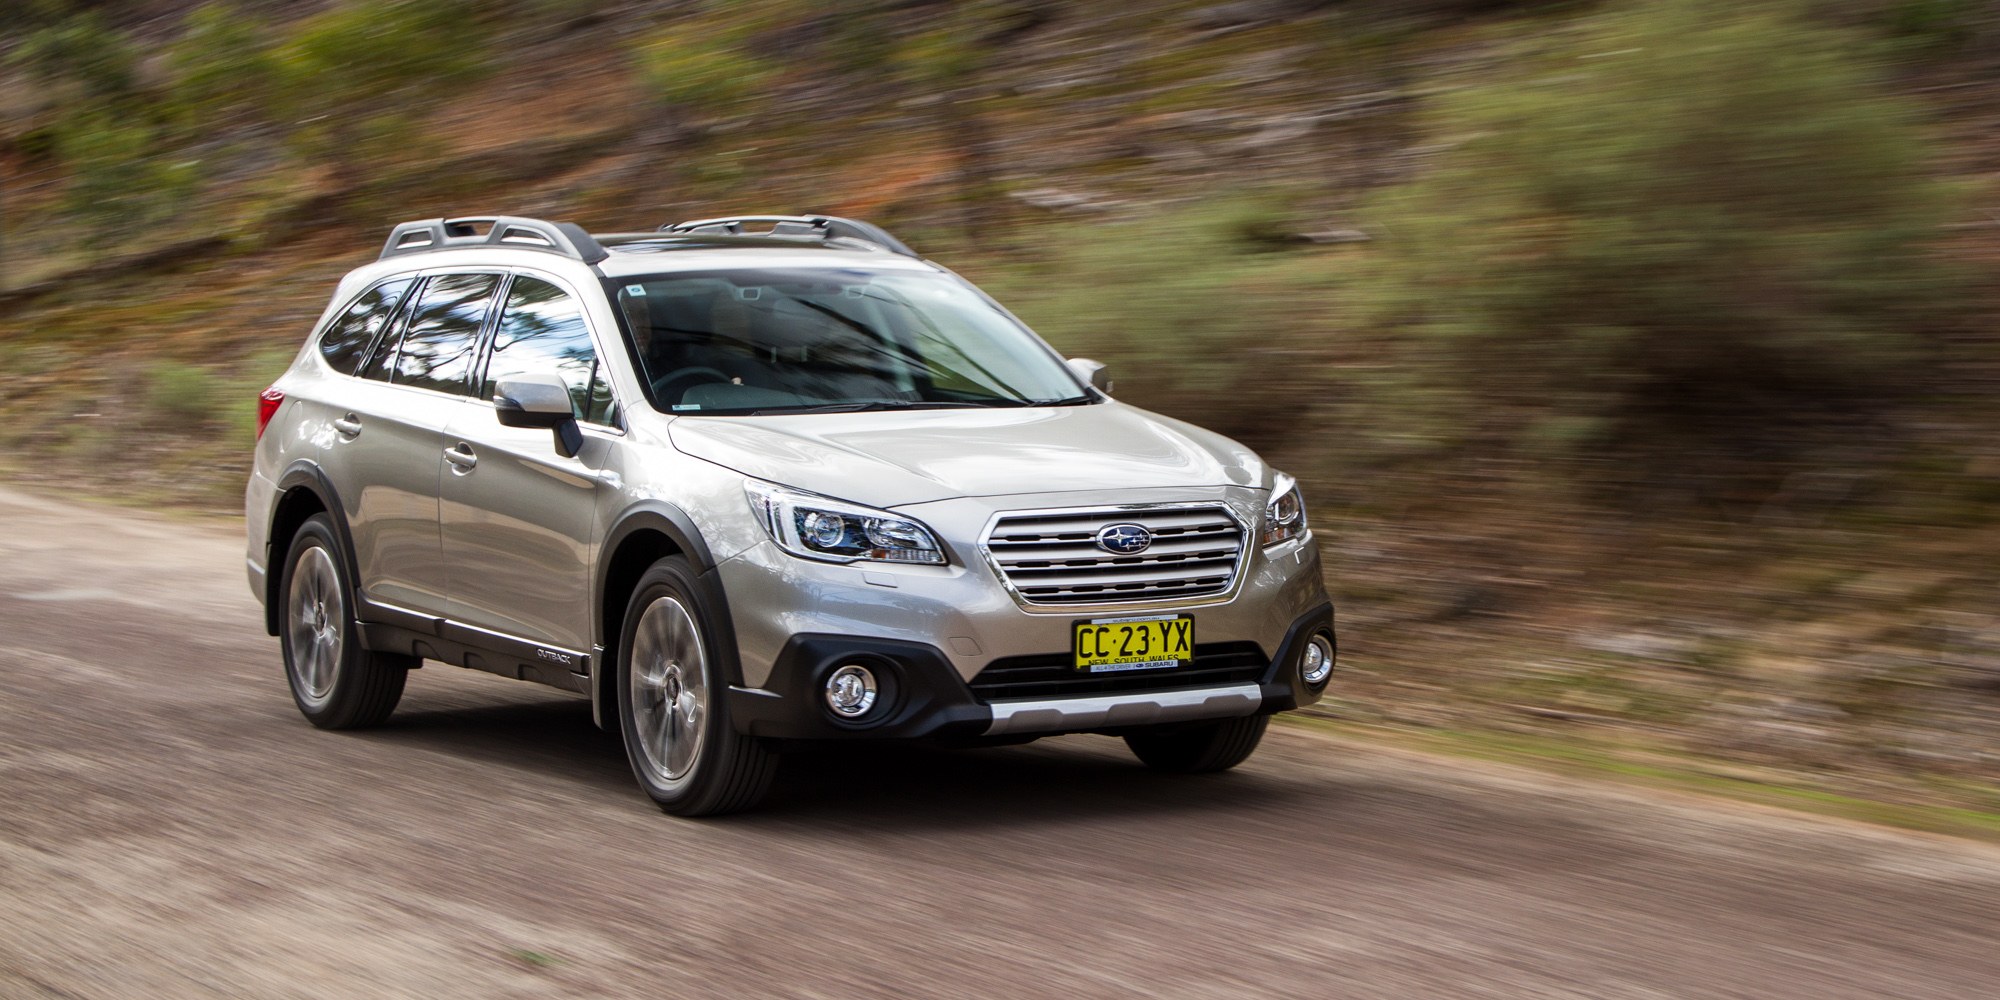 2015 Subaru Outback Review (MY16)